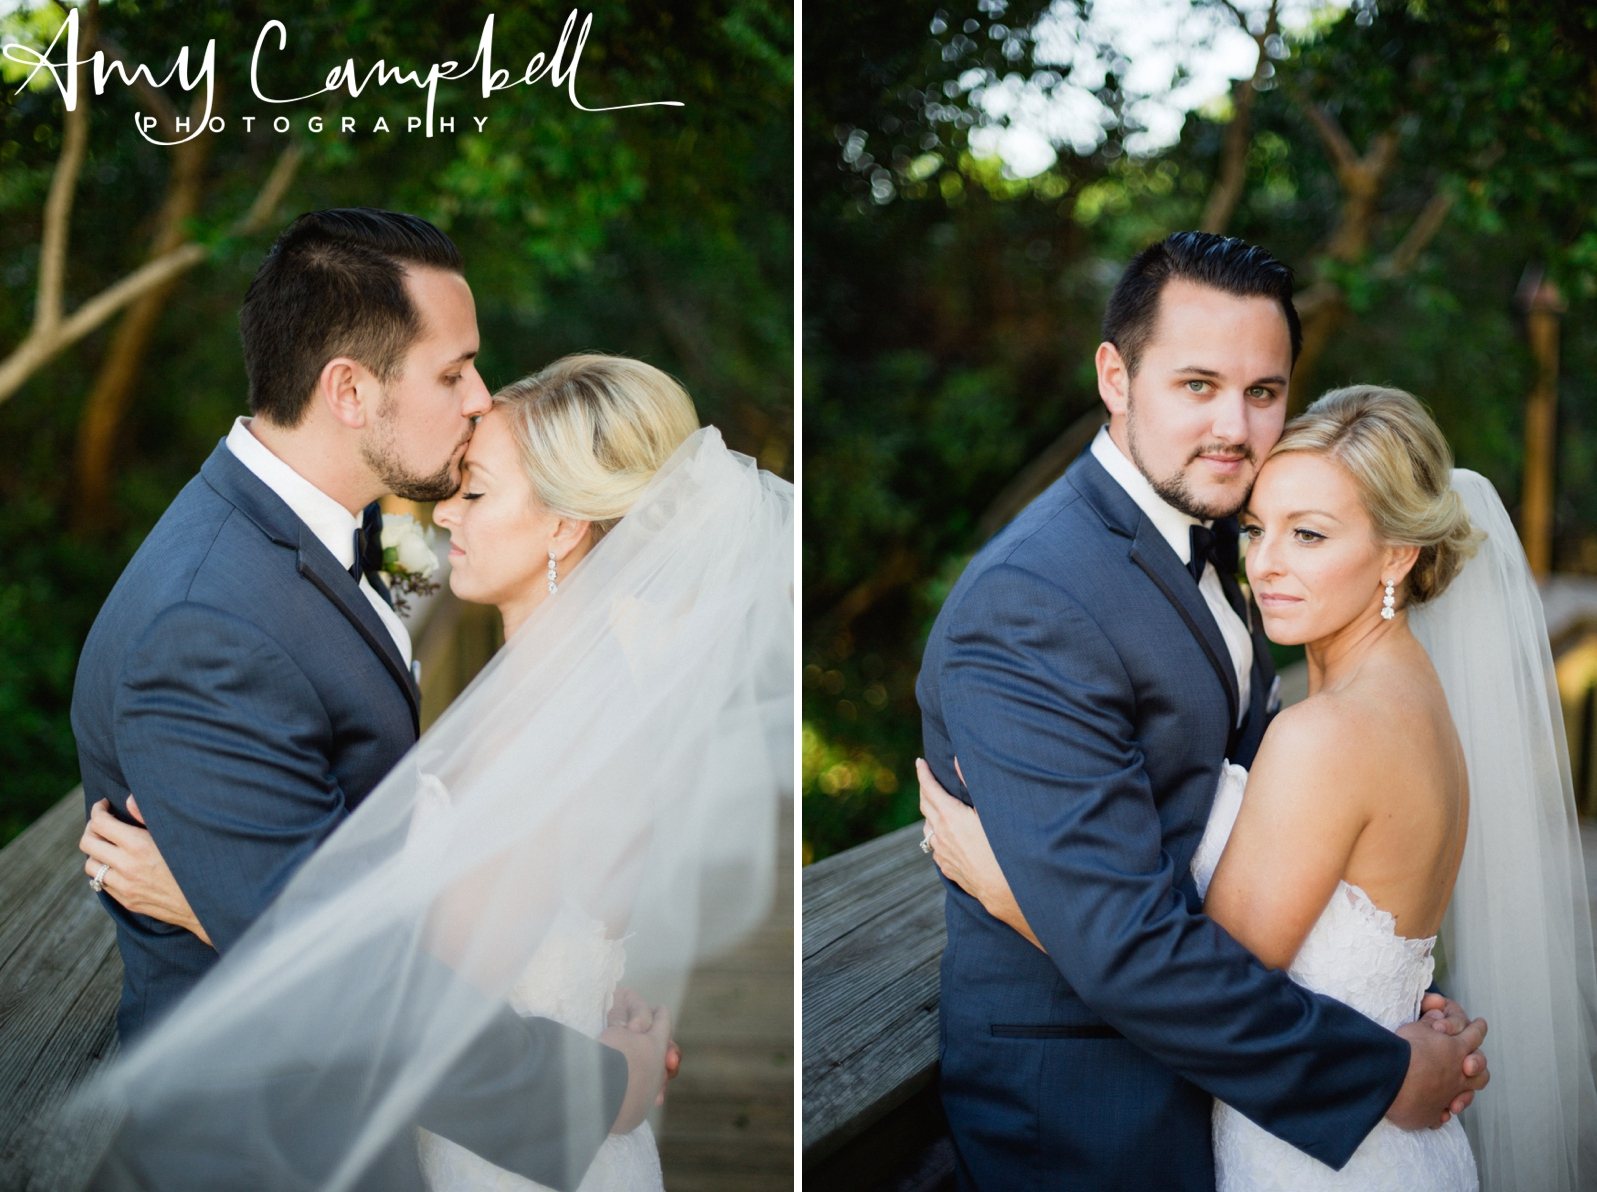 EricaandDexter_Wed_FB_AmyCampbellPhotography_0030.jpg